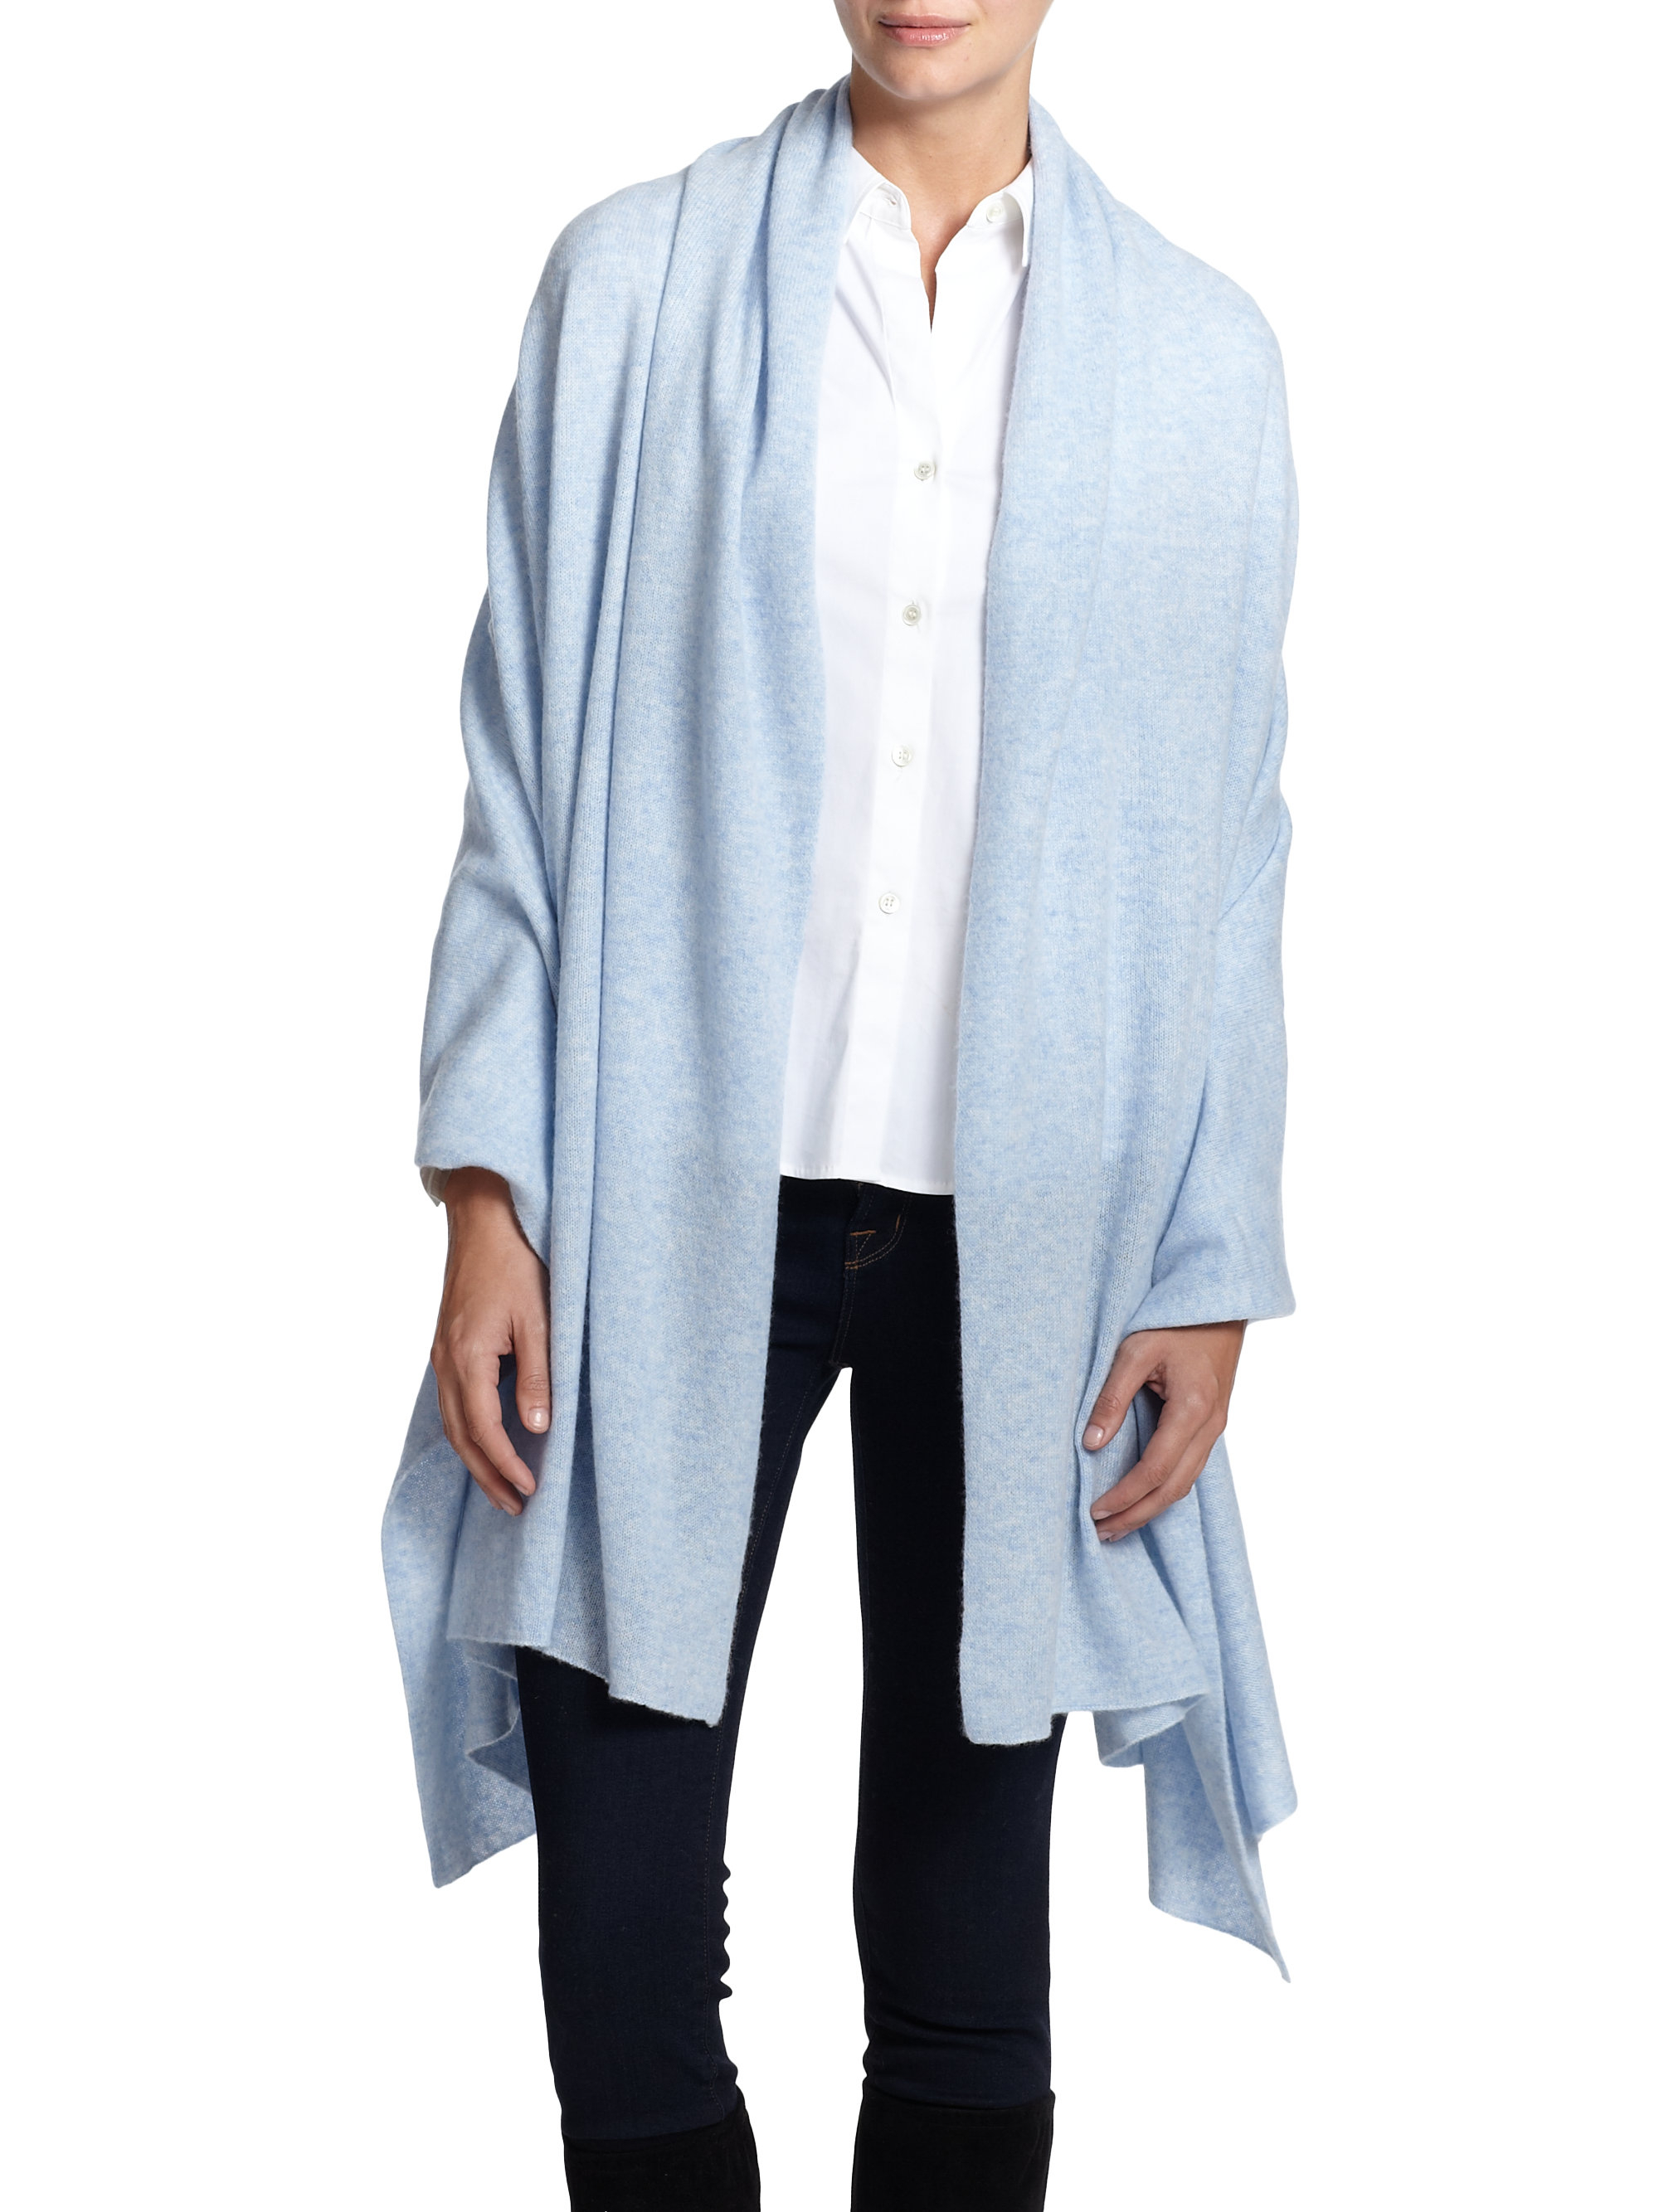 Lyst - White + Warren Cashmere Travel Wrap in Blue